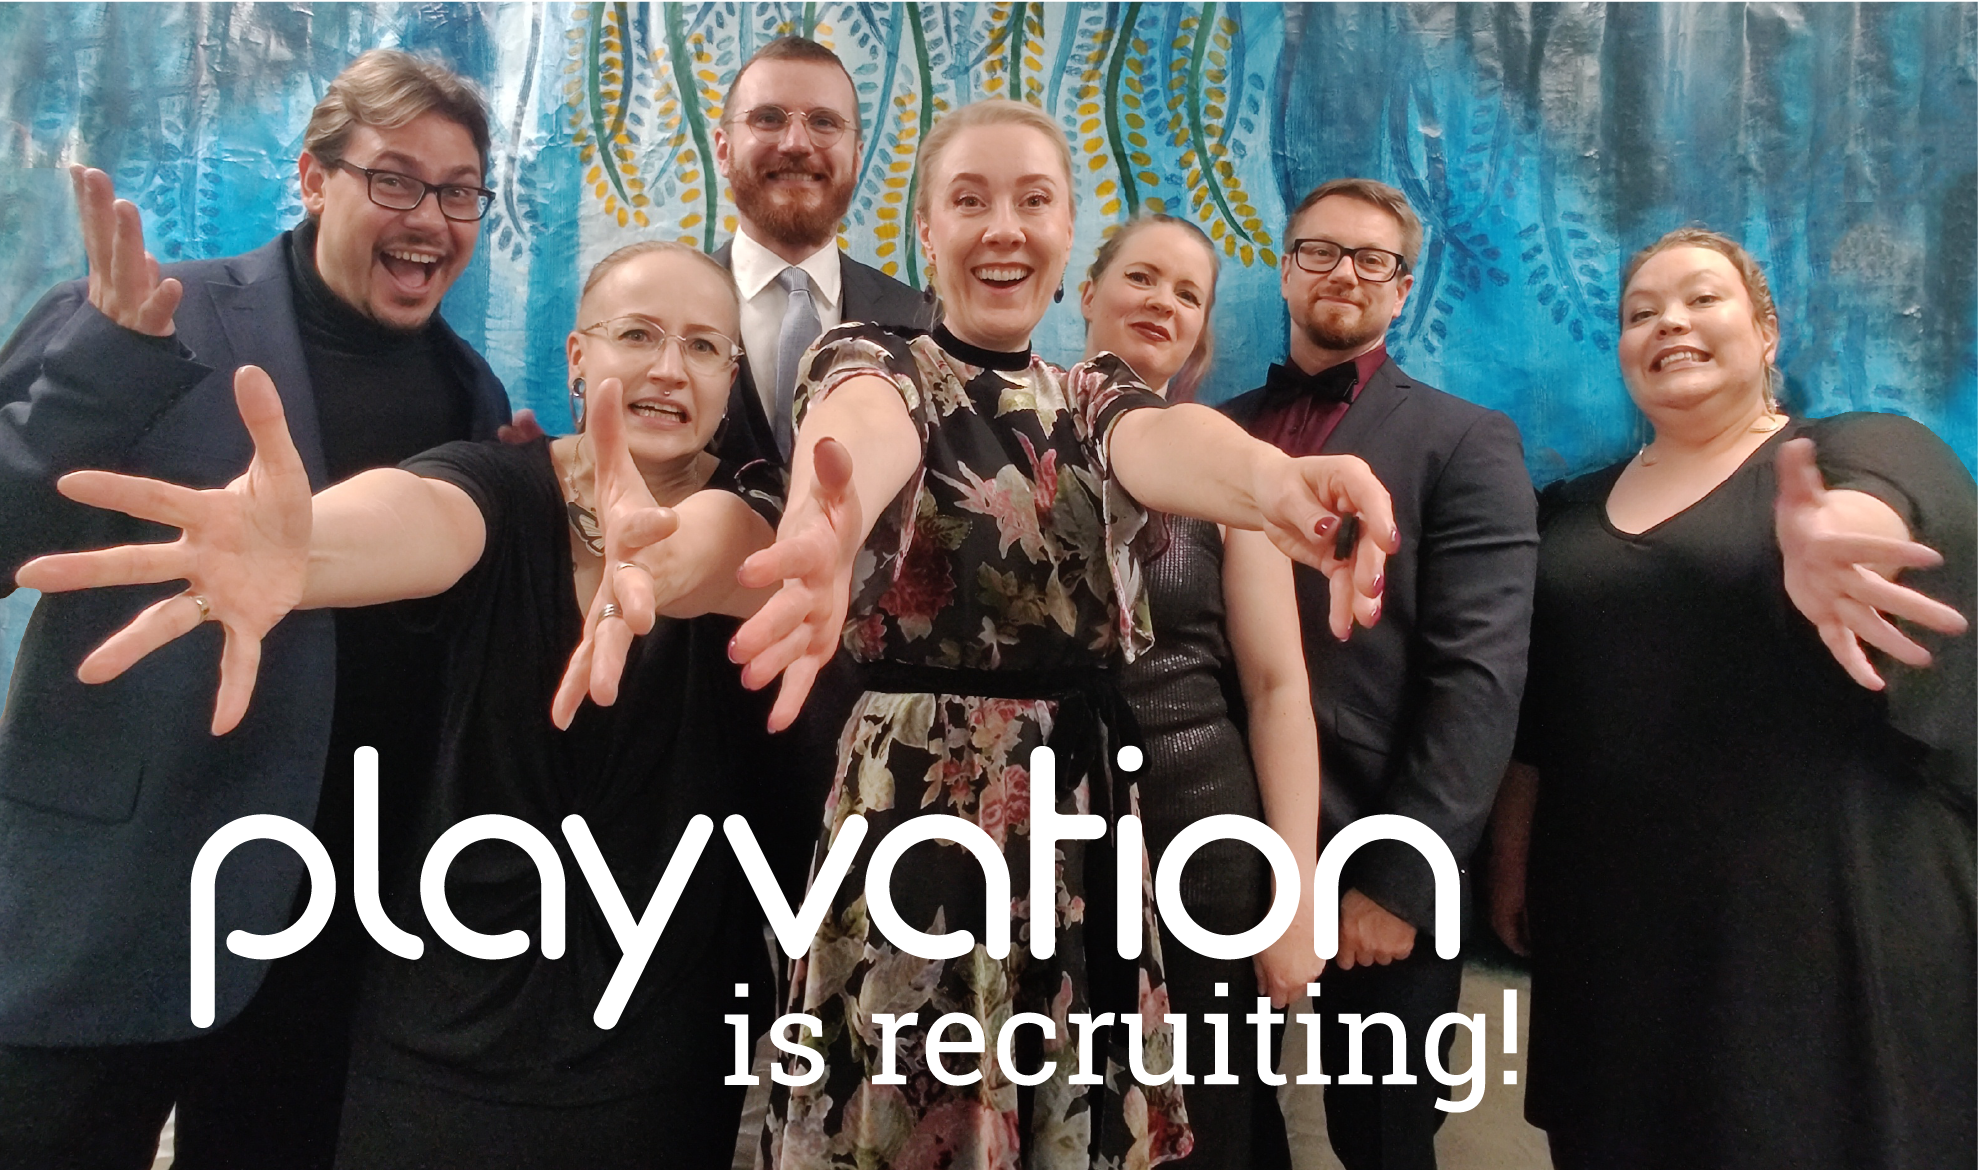 Playvation is recruiting